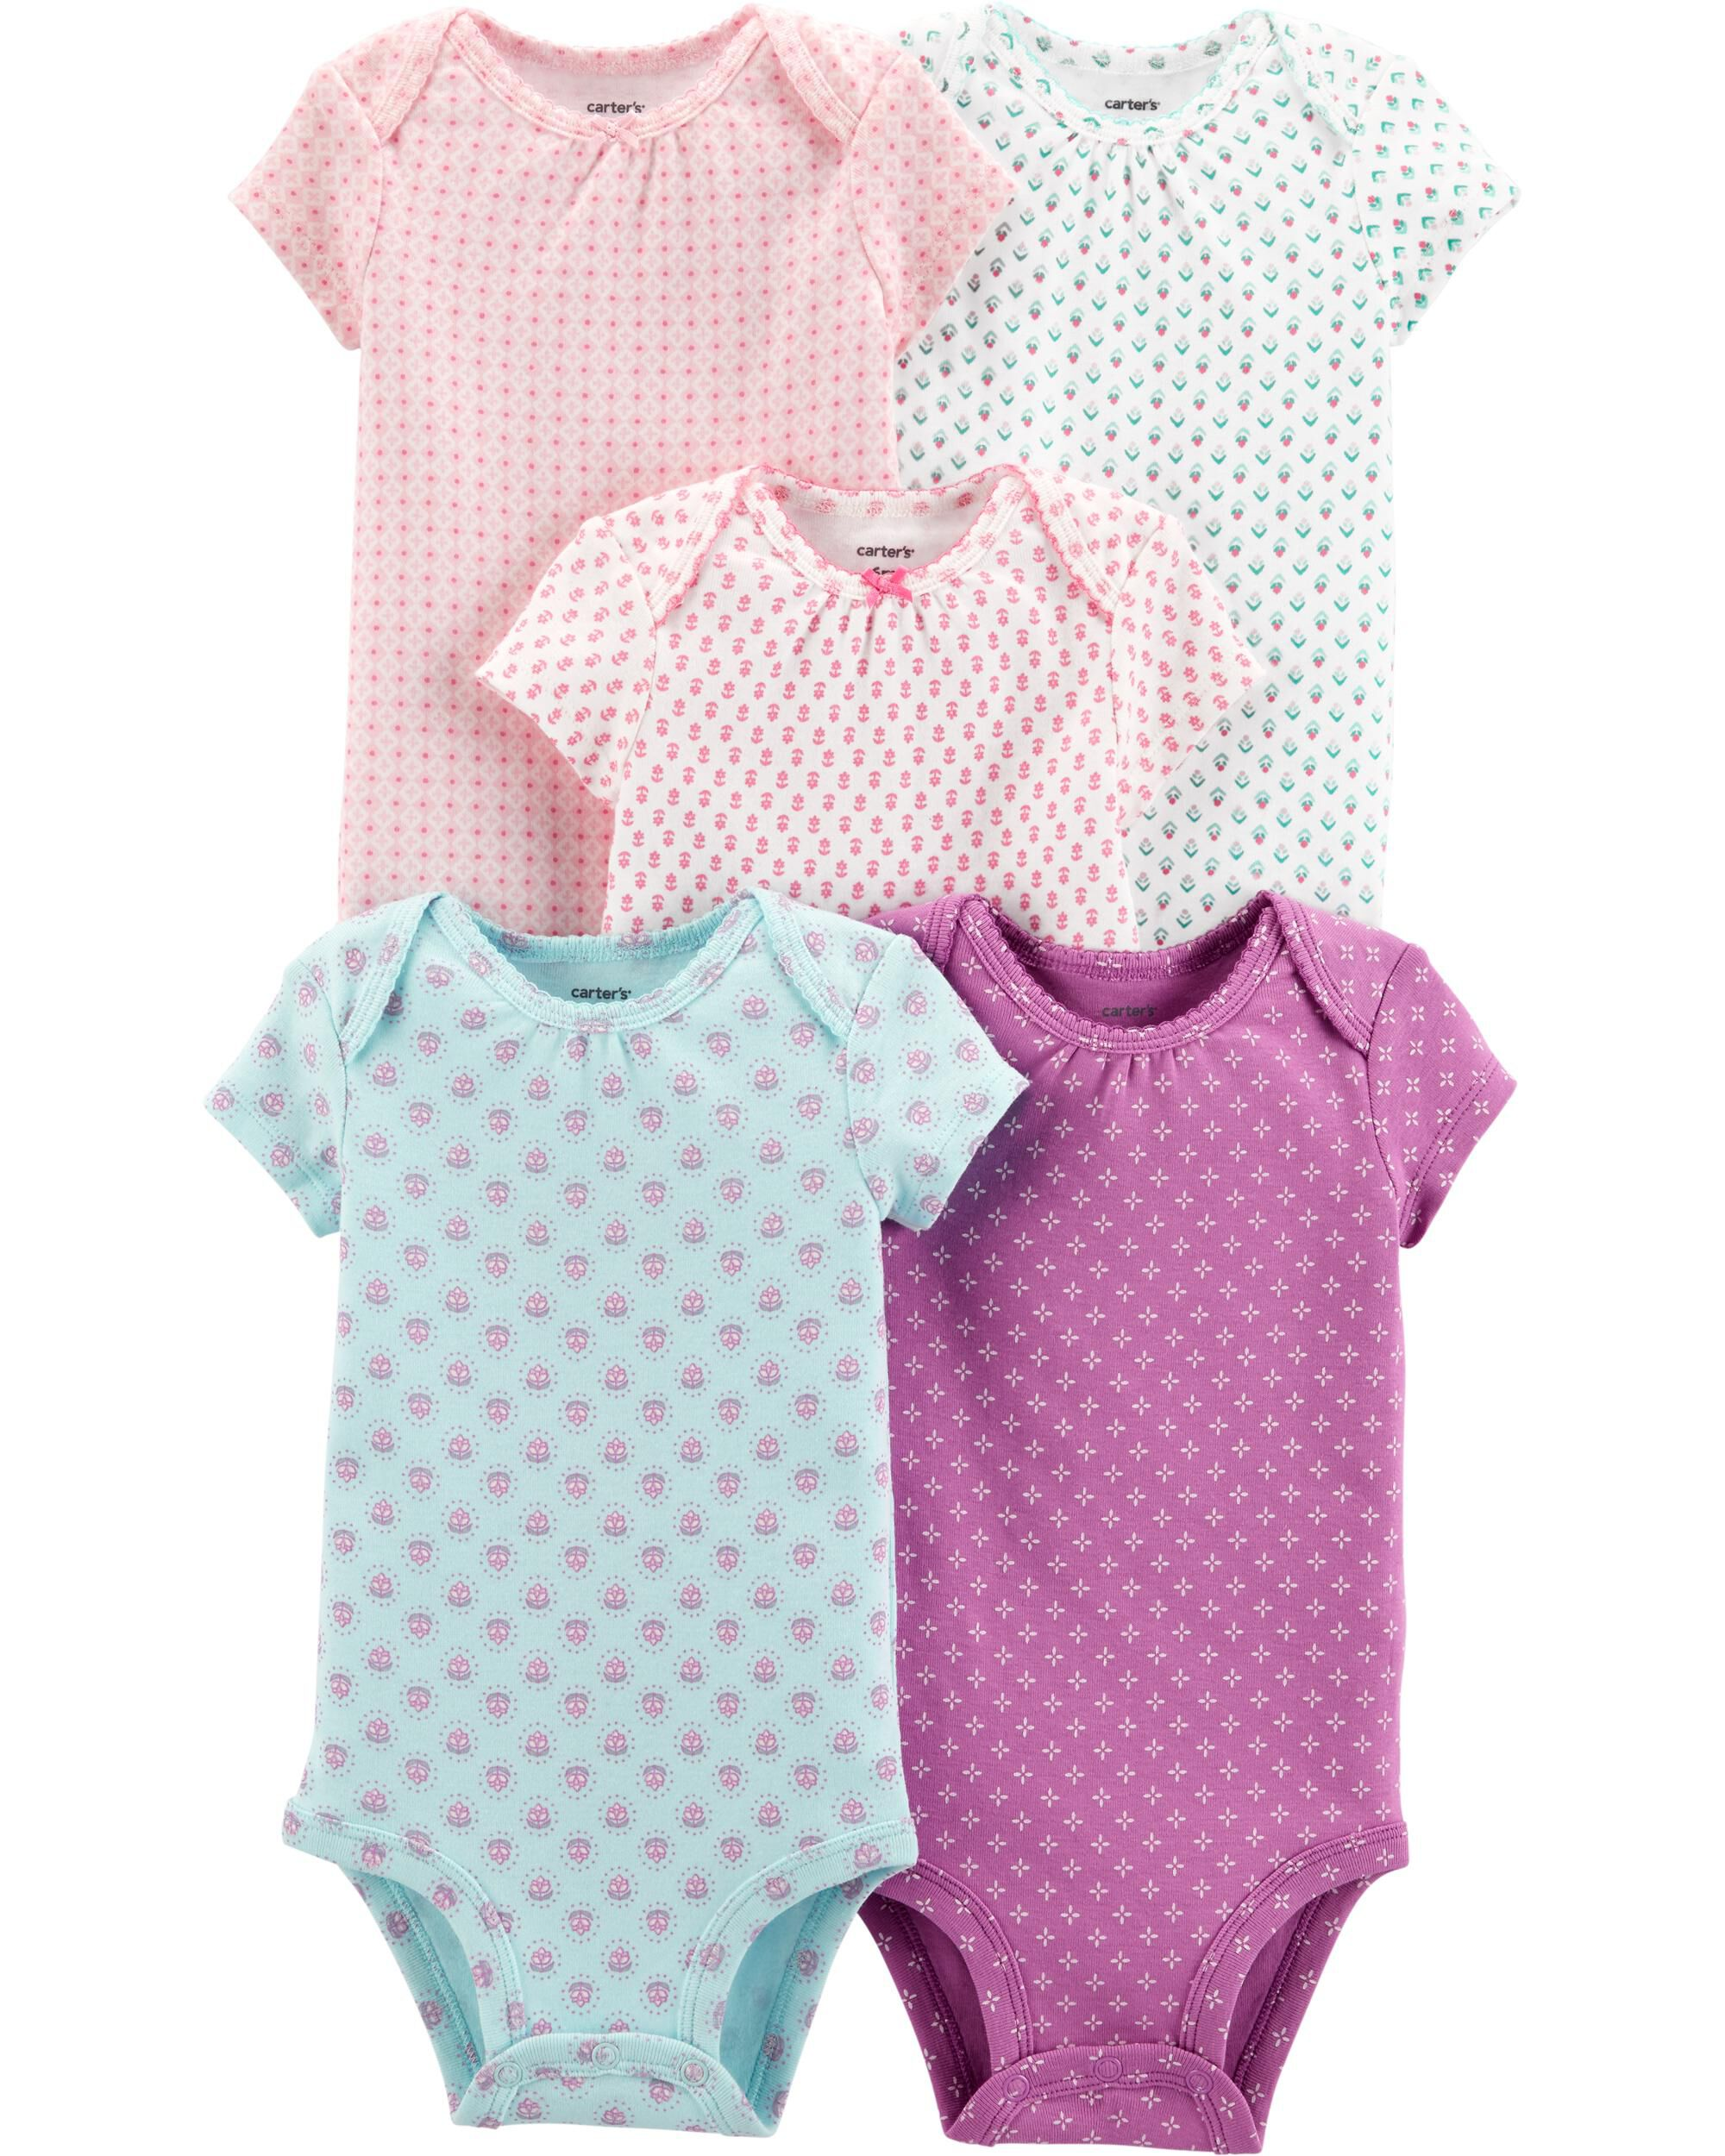 Babygrows & Playsuits Hearty Girls All In One Age 0-3 Months 3 Pack Girls' Clothing (0-24 Months)